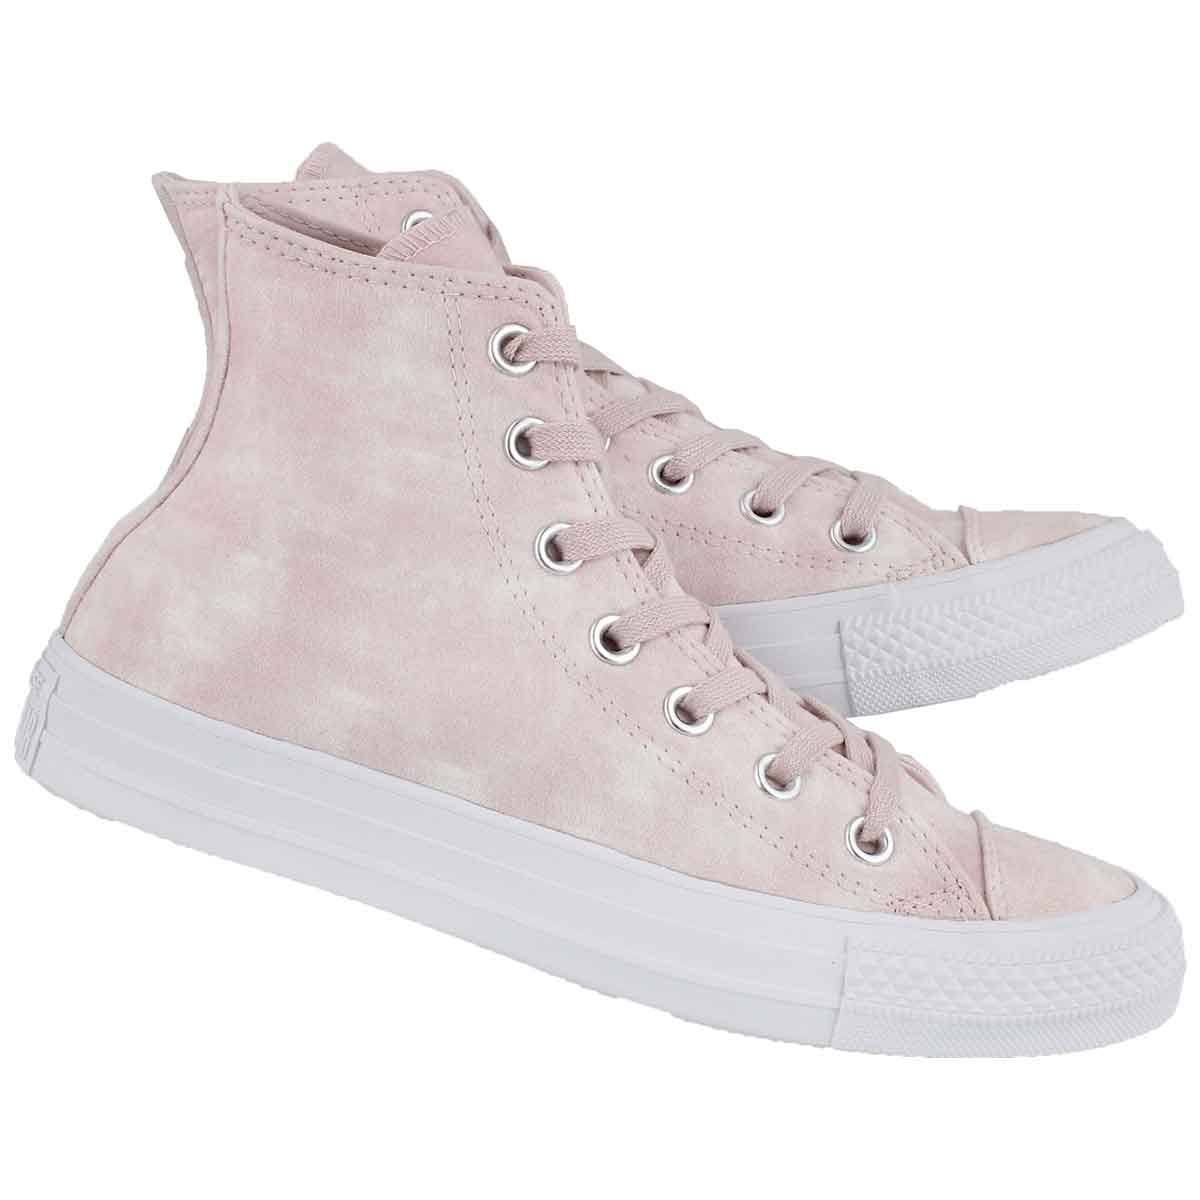 Lds CT AS Peached Wash coral high top